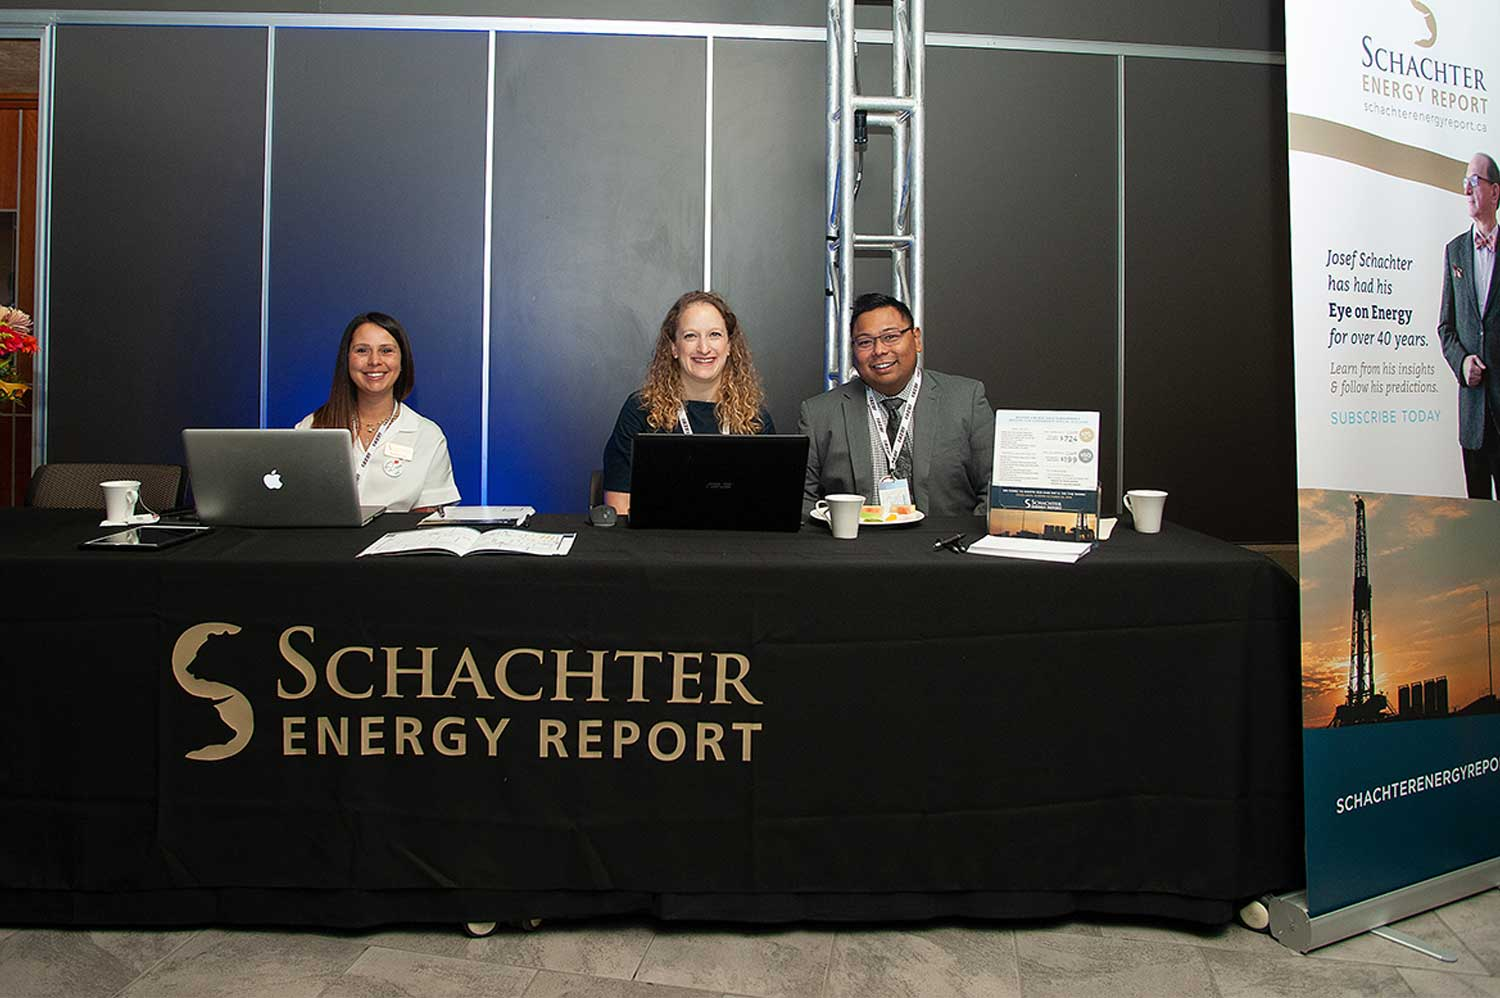 """Catch the Energy"" Conference"